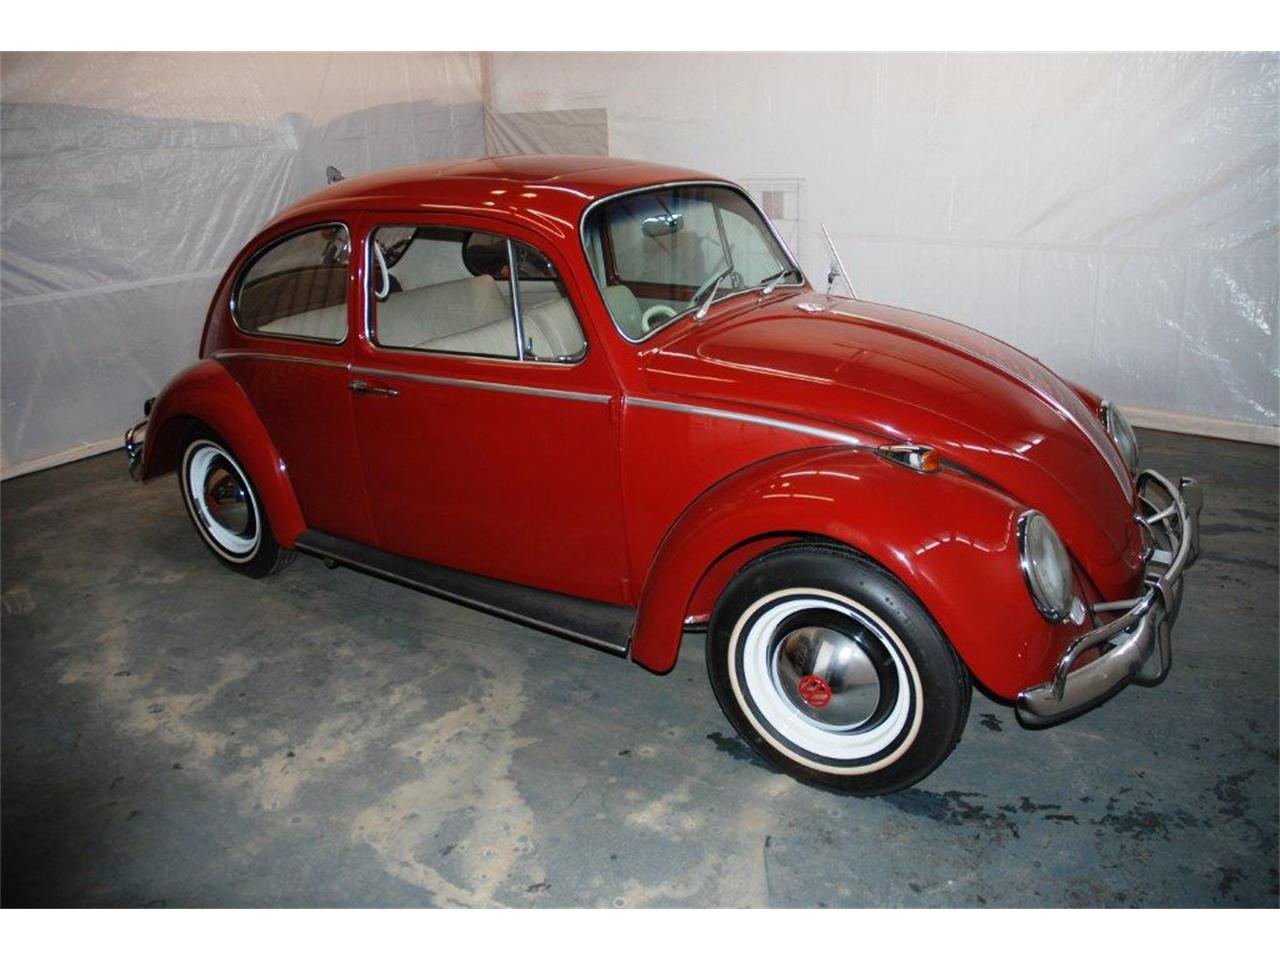 Large Picture of Classic 1965 Beetle located in Alberta - $15,000.00 Offered by a Private Seller - QWTC